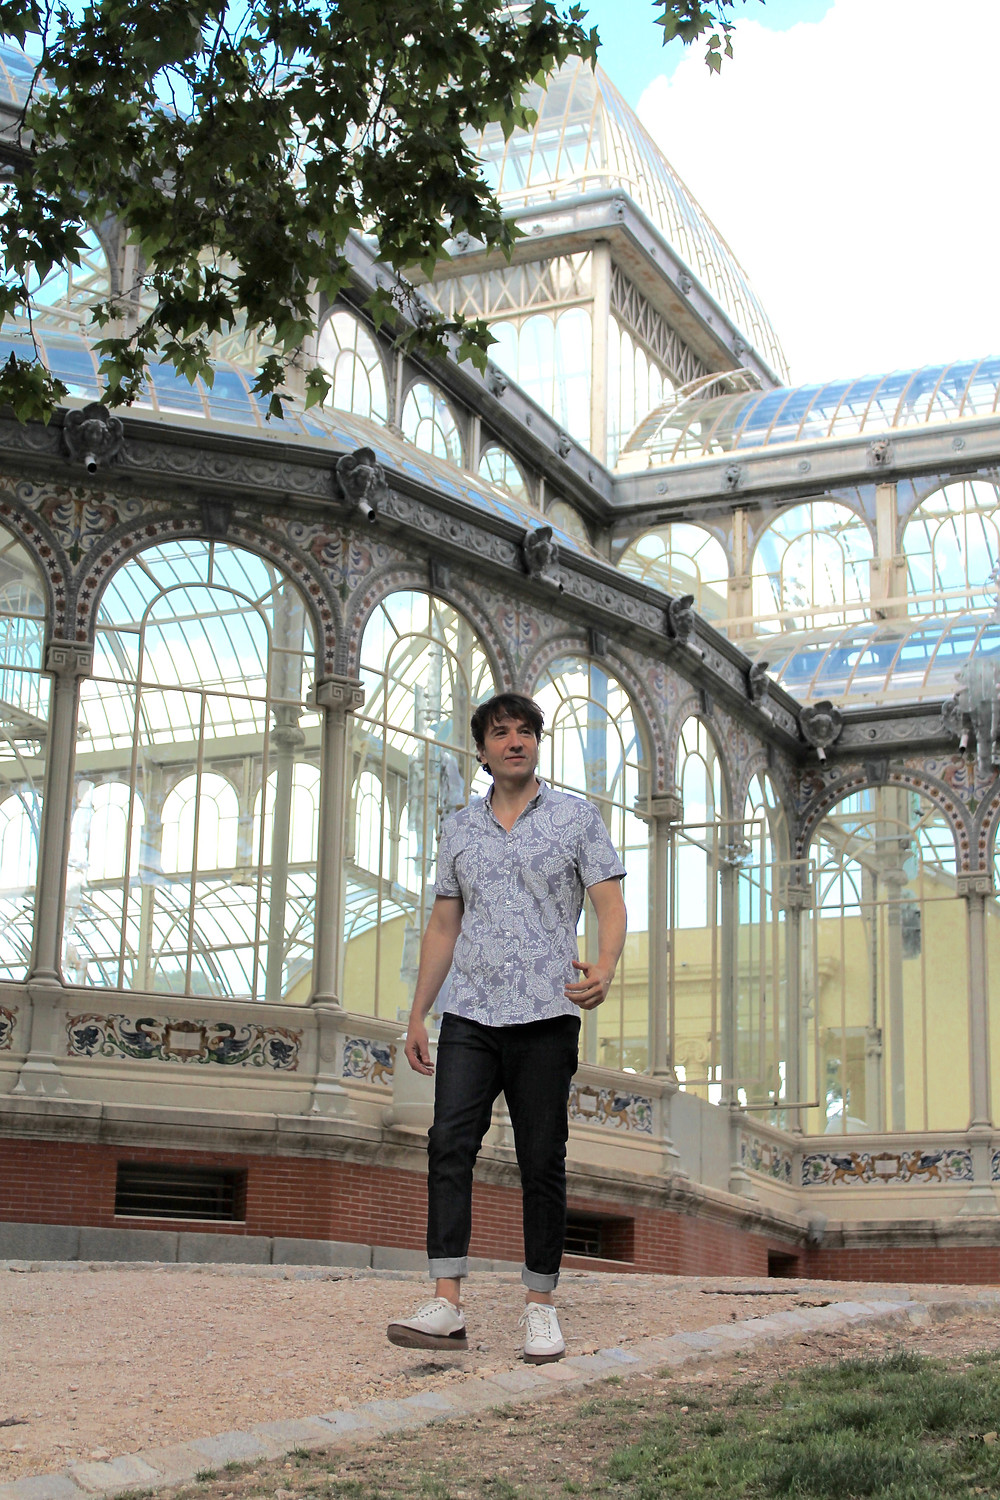 The Trendy Man en el Palacio de Cristal